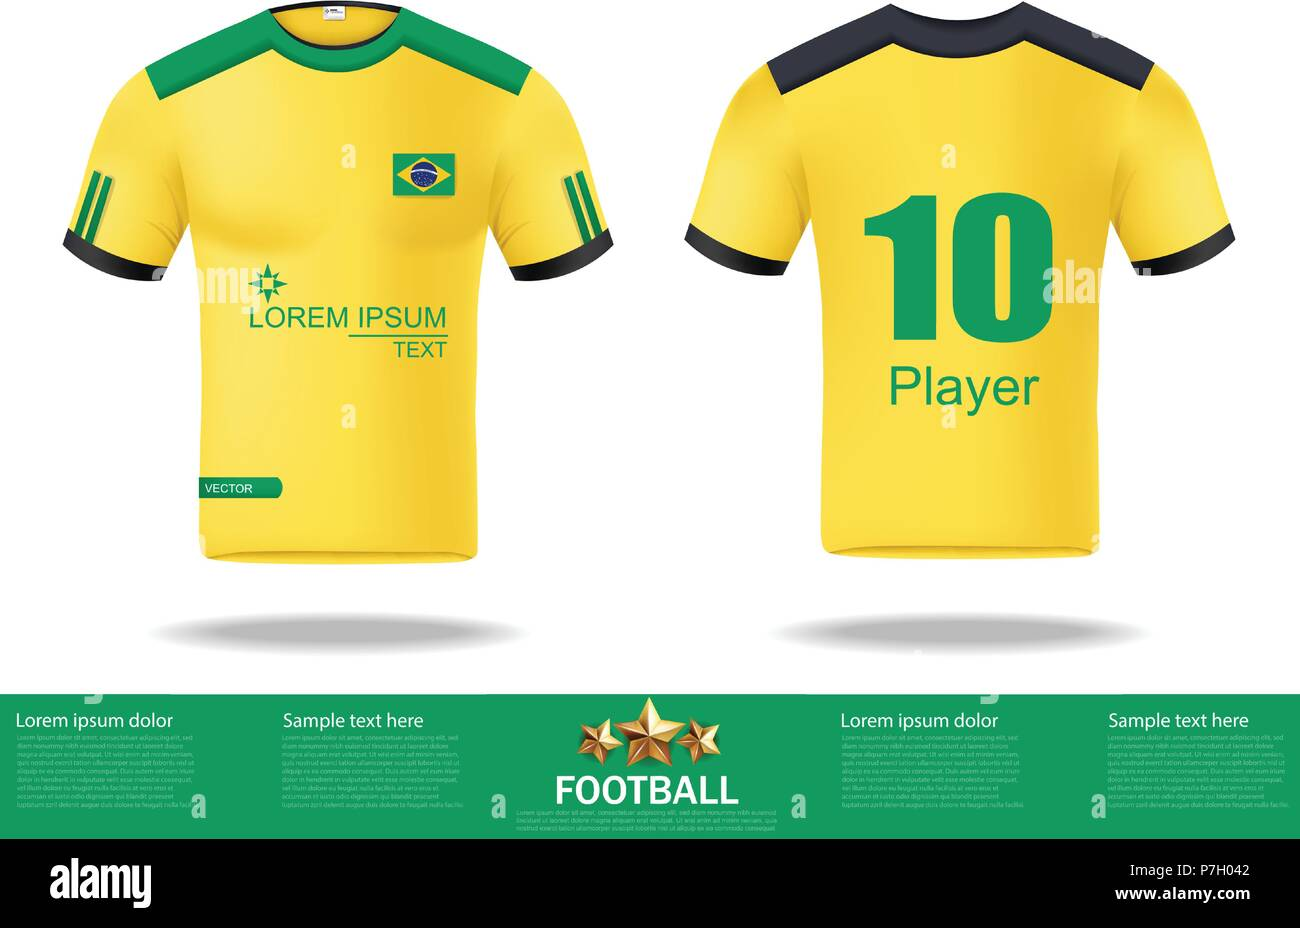 57a033369 Football yellow t-shirts Vector. Design template for soccer jersey ...